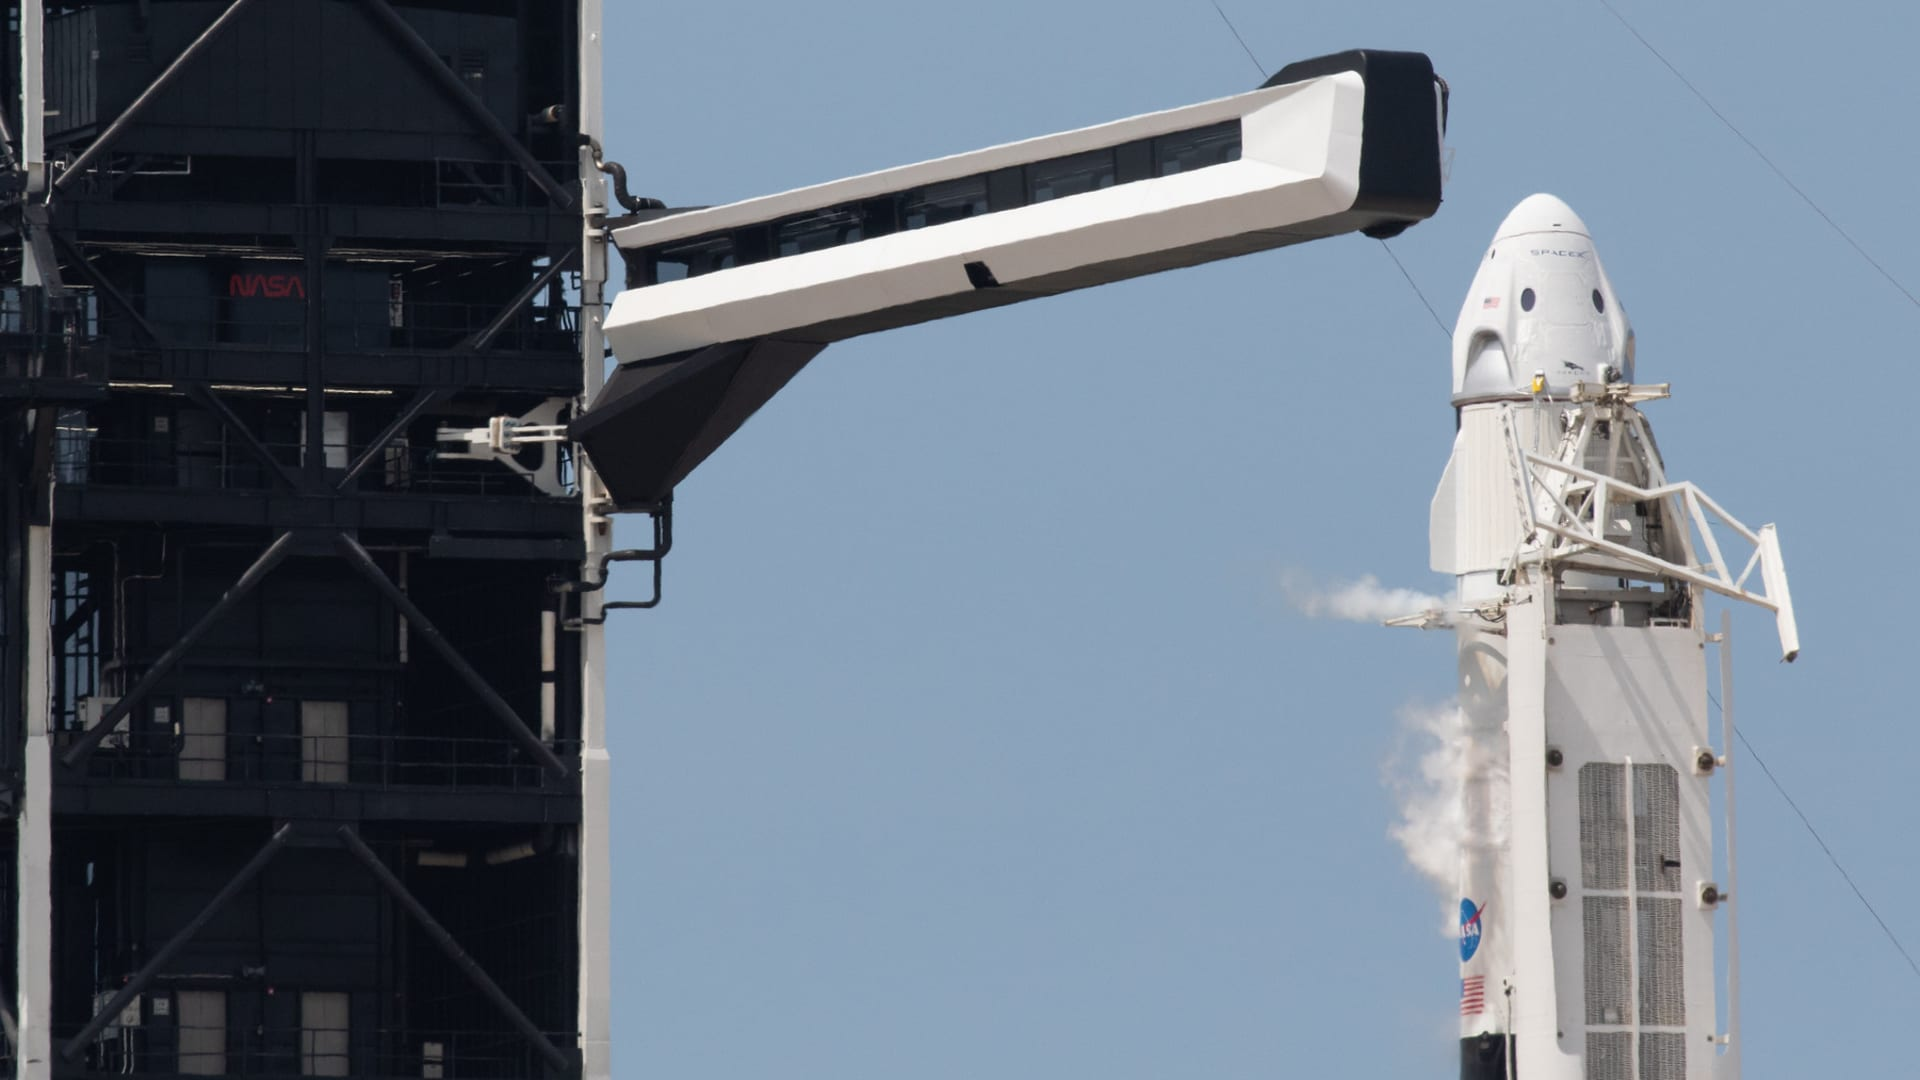 A SpaceX Falcon 9 rocket about to launch the company's Crew Dragon spacecraft is seen before the Demo-2 mission with NASA astronauts Robert Behnken and Douglas Hurley onboard.